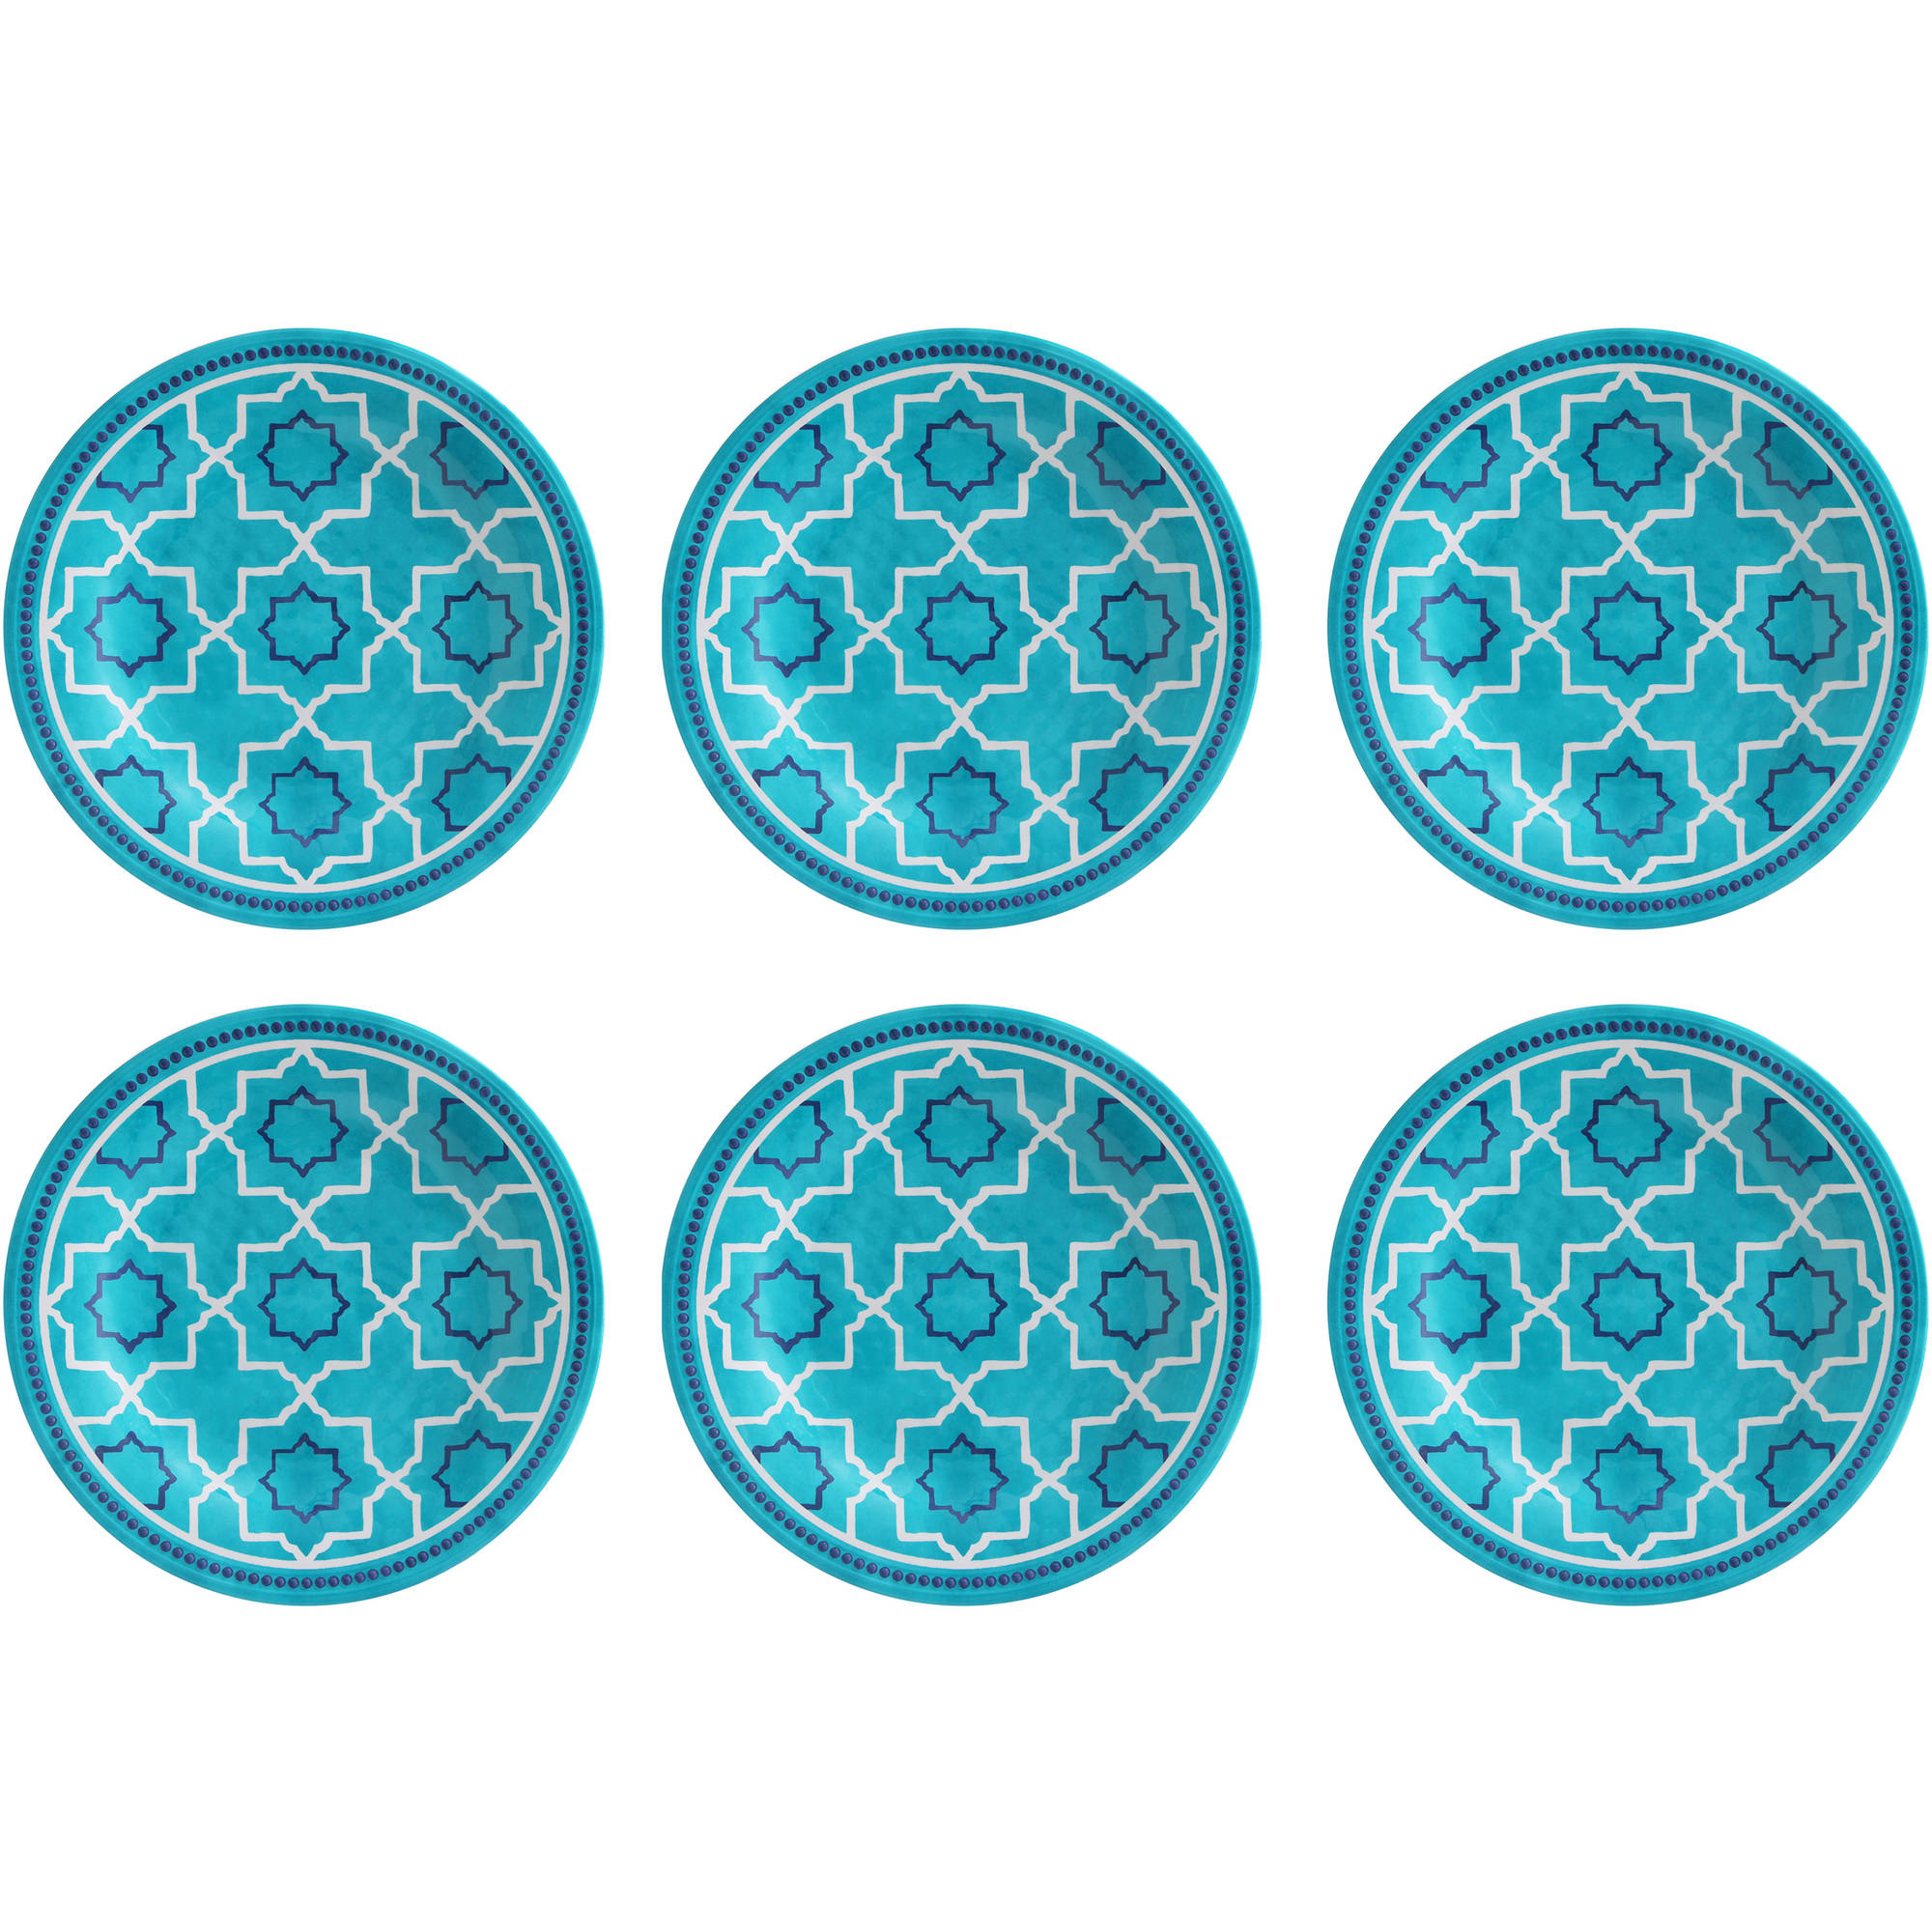 Better Homes and Gardens Teal Trellis Print Melamine Dinner Plate, 6pk